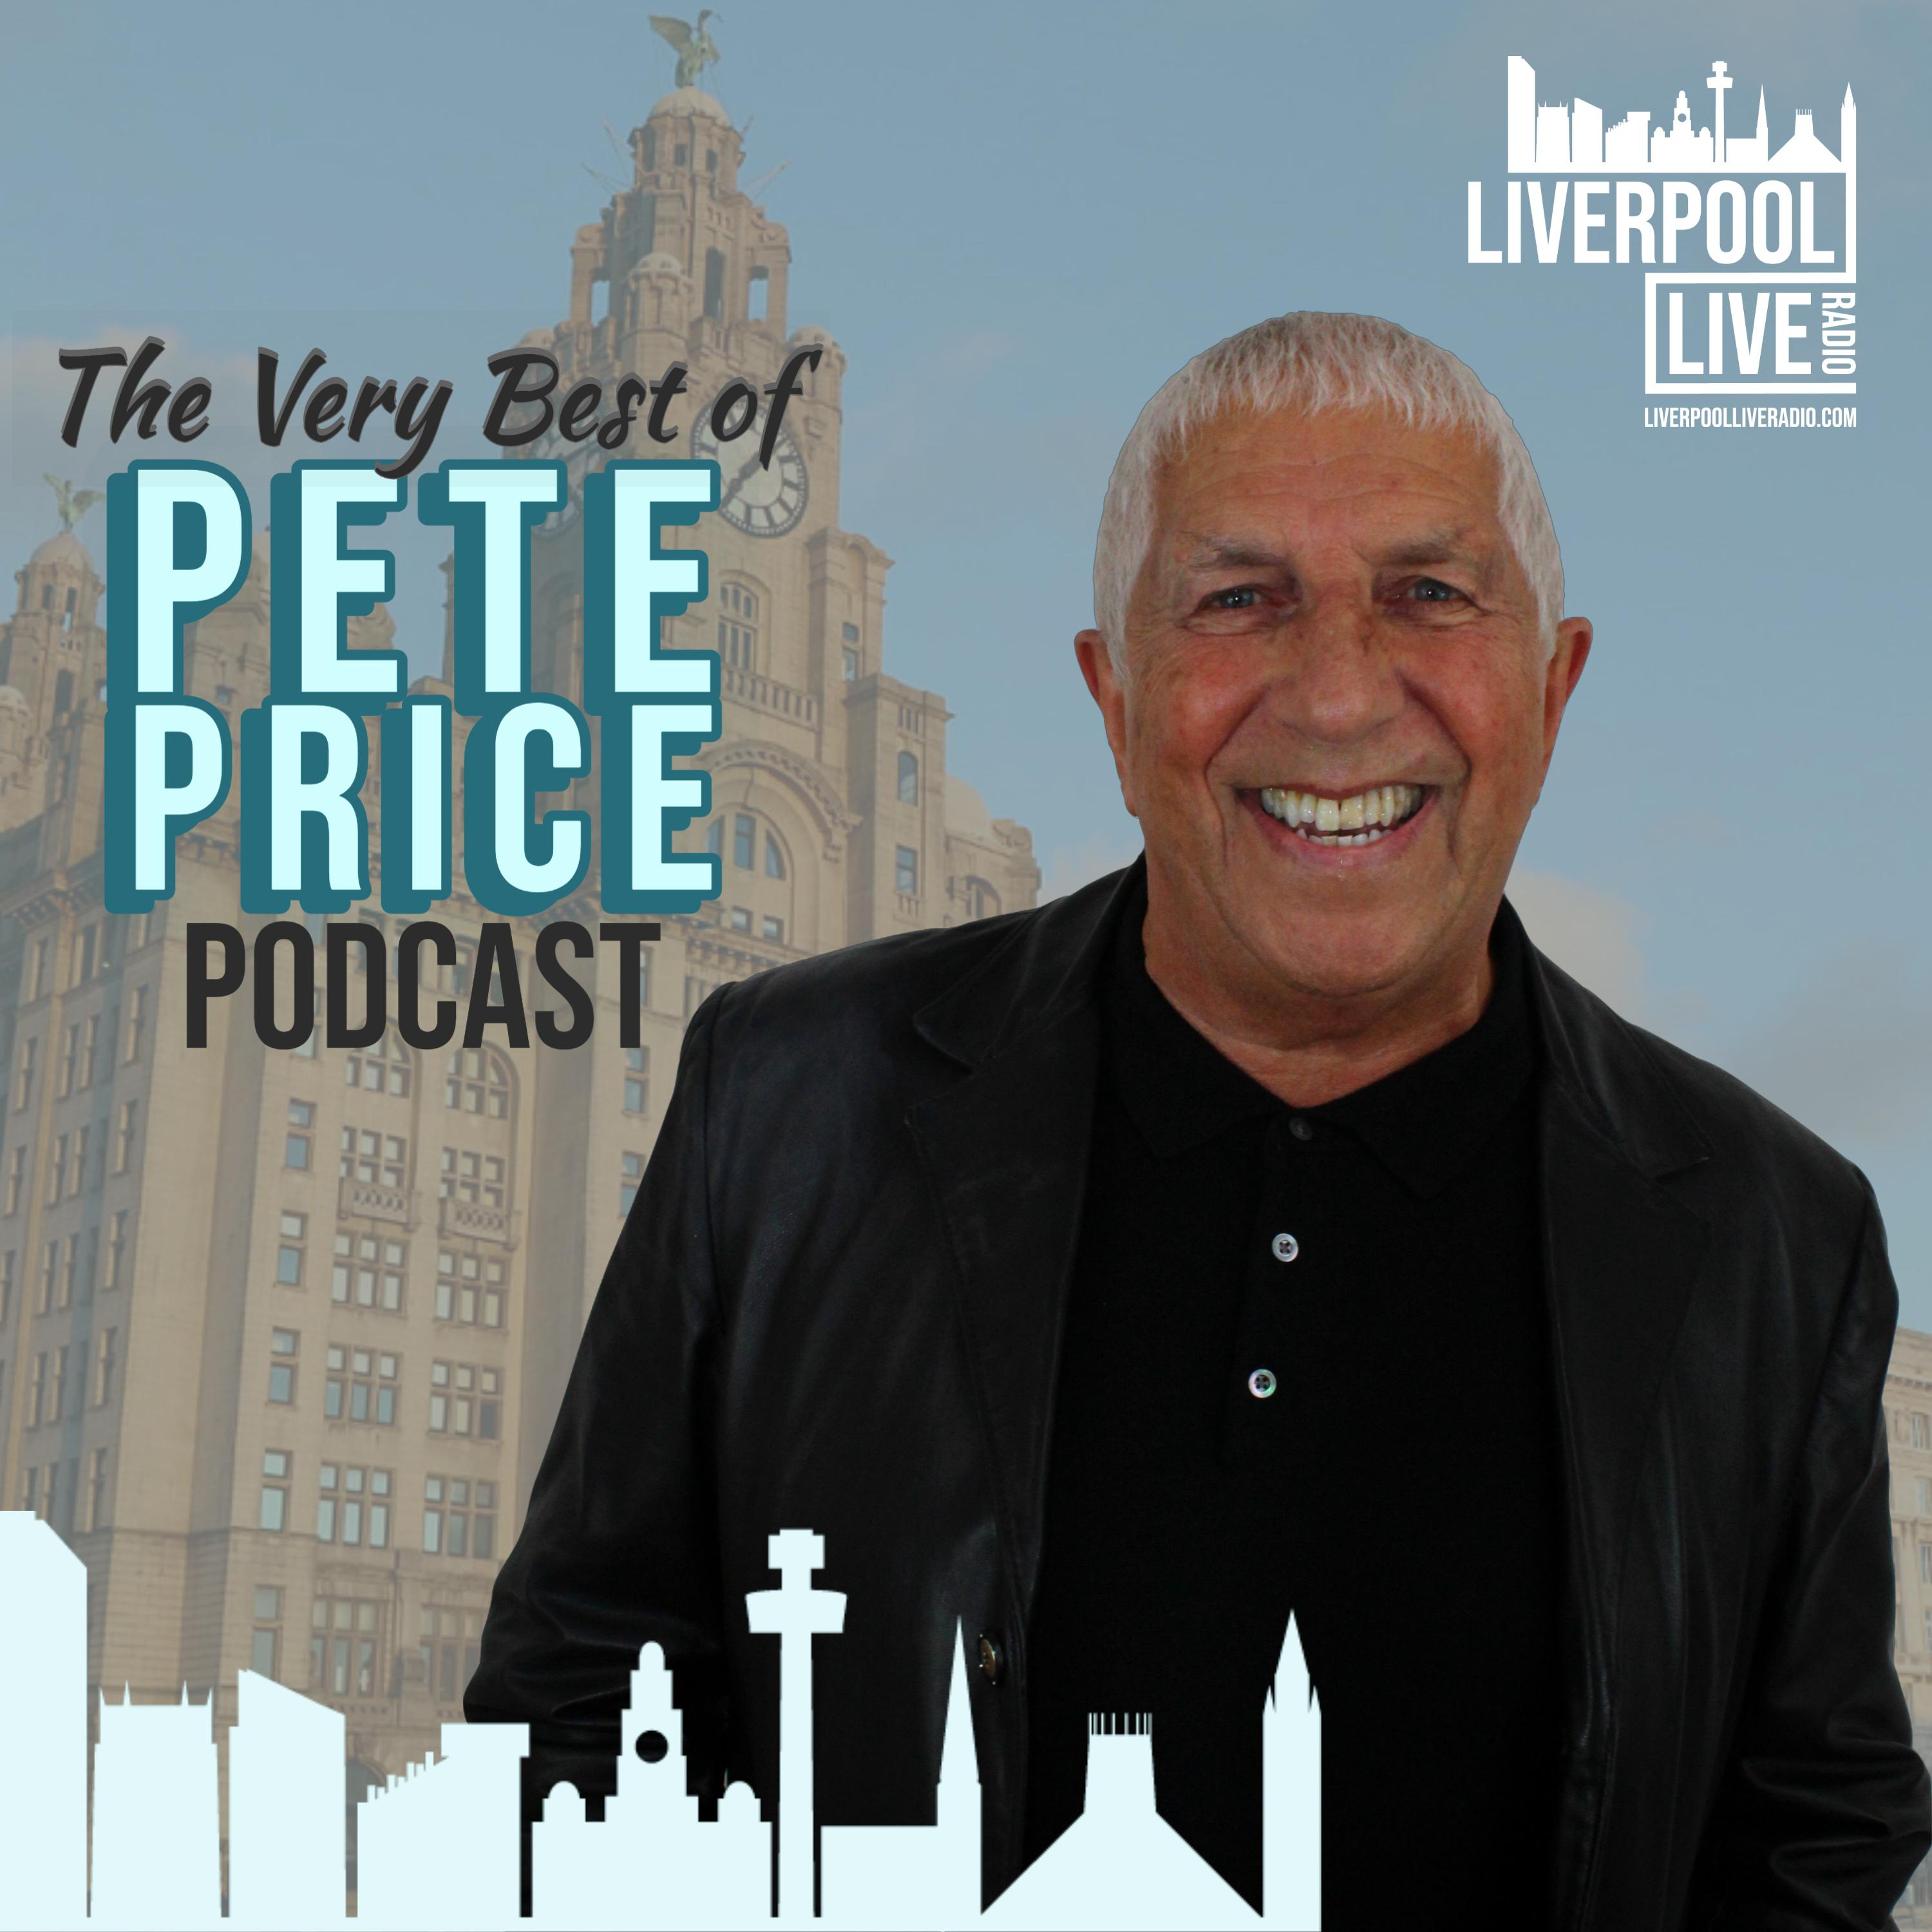 The Very Best of Pete Price